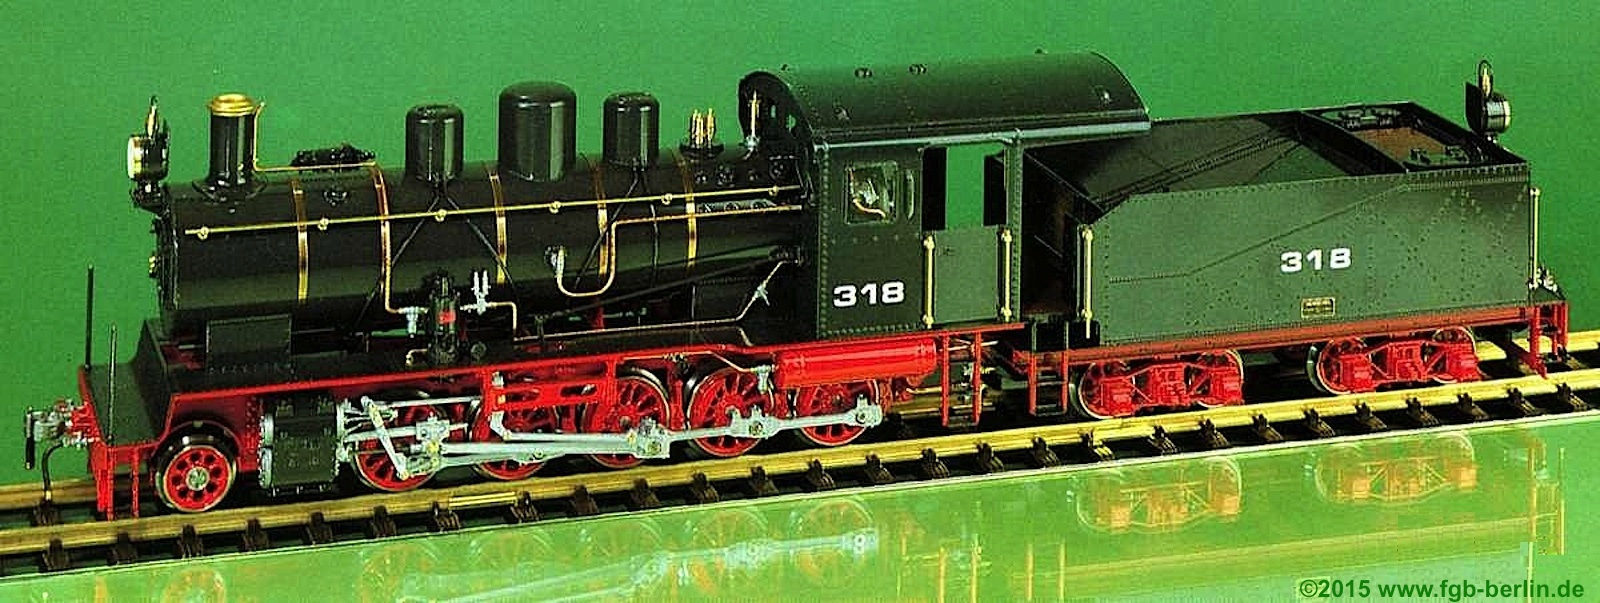 Magnus Decapod-Typ, Tungpubahn (China) Dampflokomotive (Steam Locomotive) 318